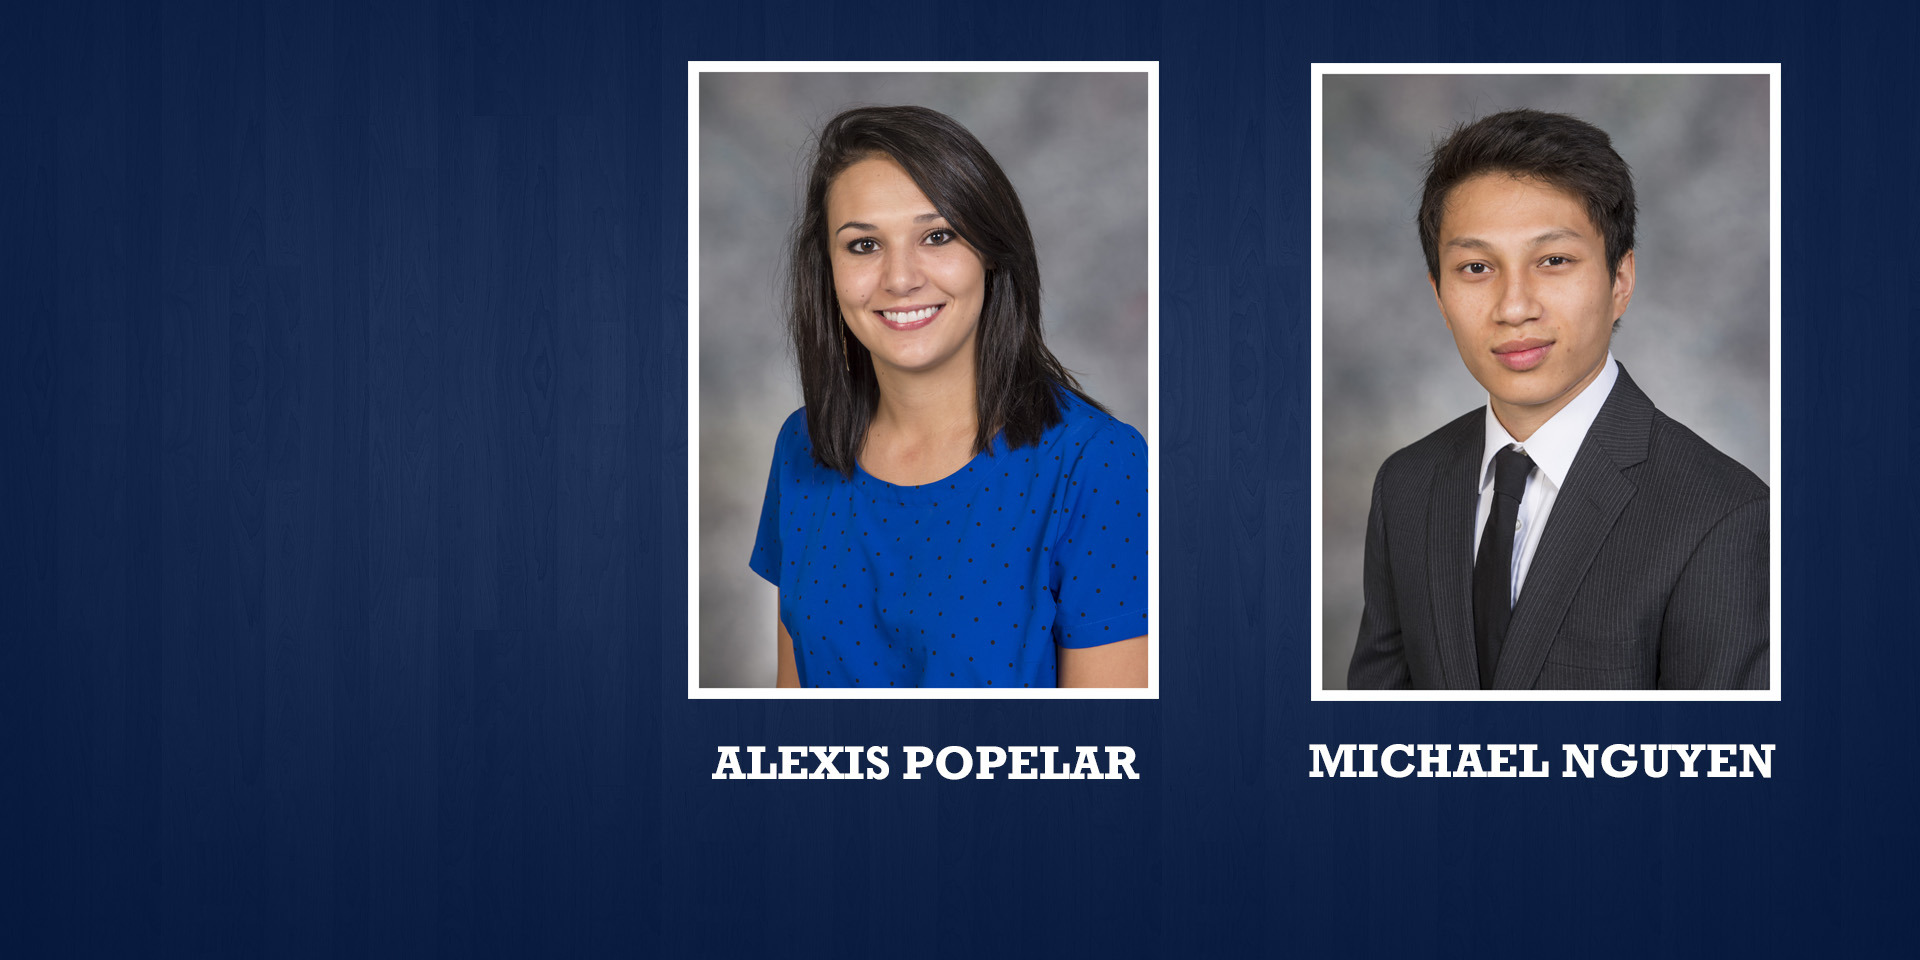 Alexis Popelar and Michael Nguyen were both added to the Rice women's basketball staff.